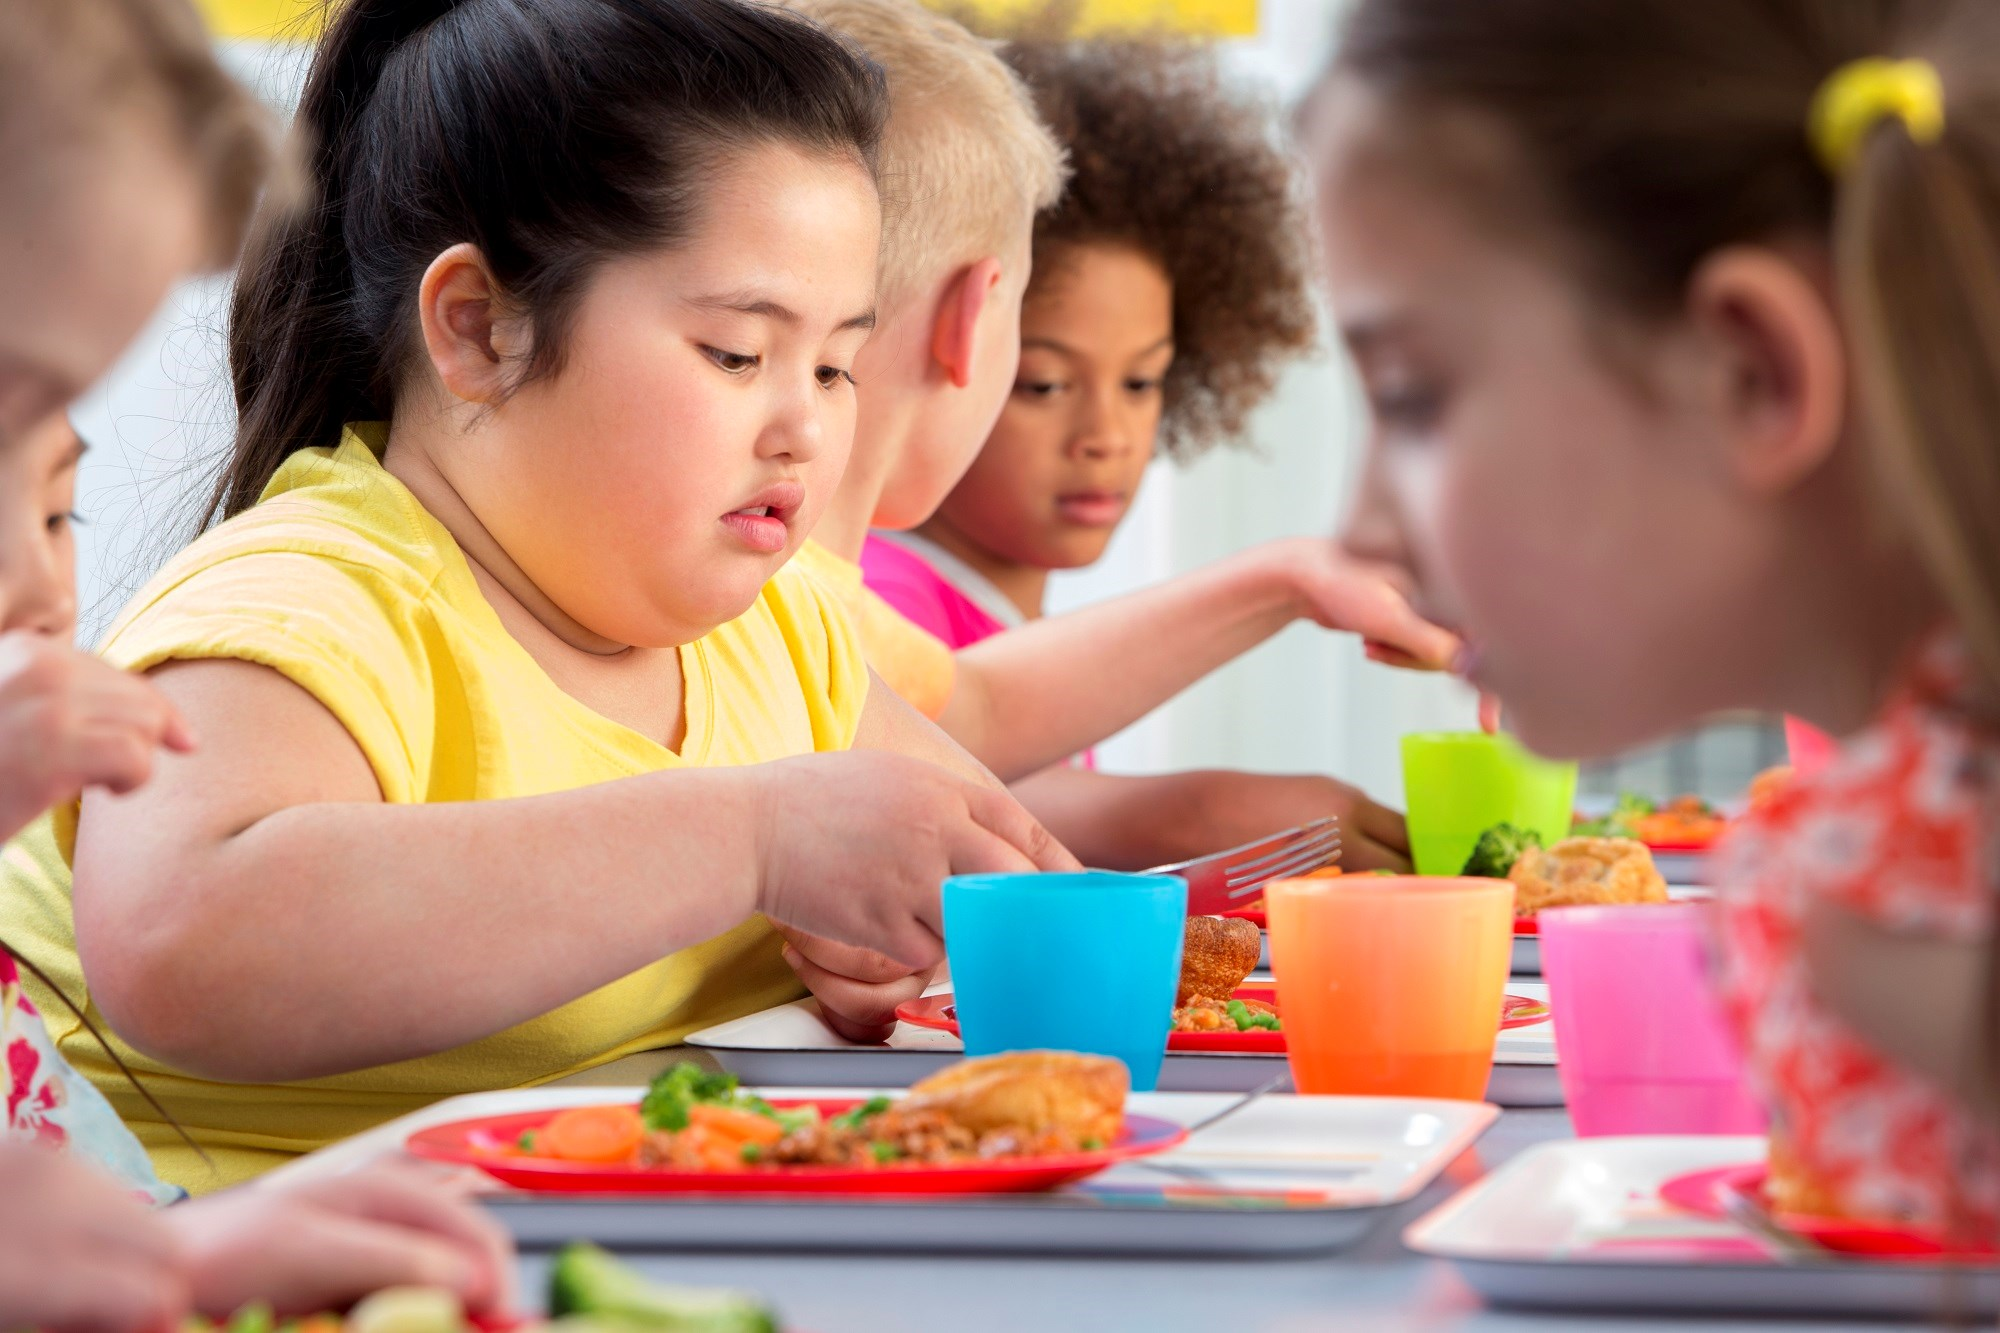 Racial Disparities Observed in Childhood Obesity Rates